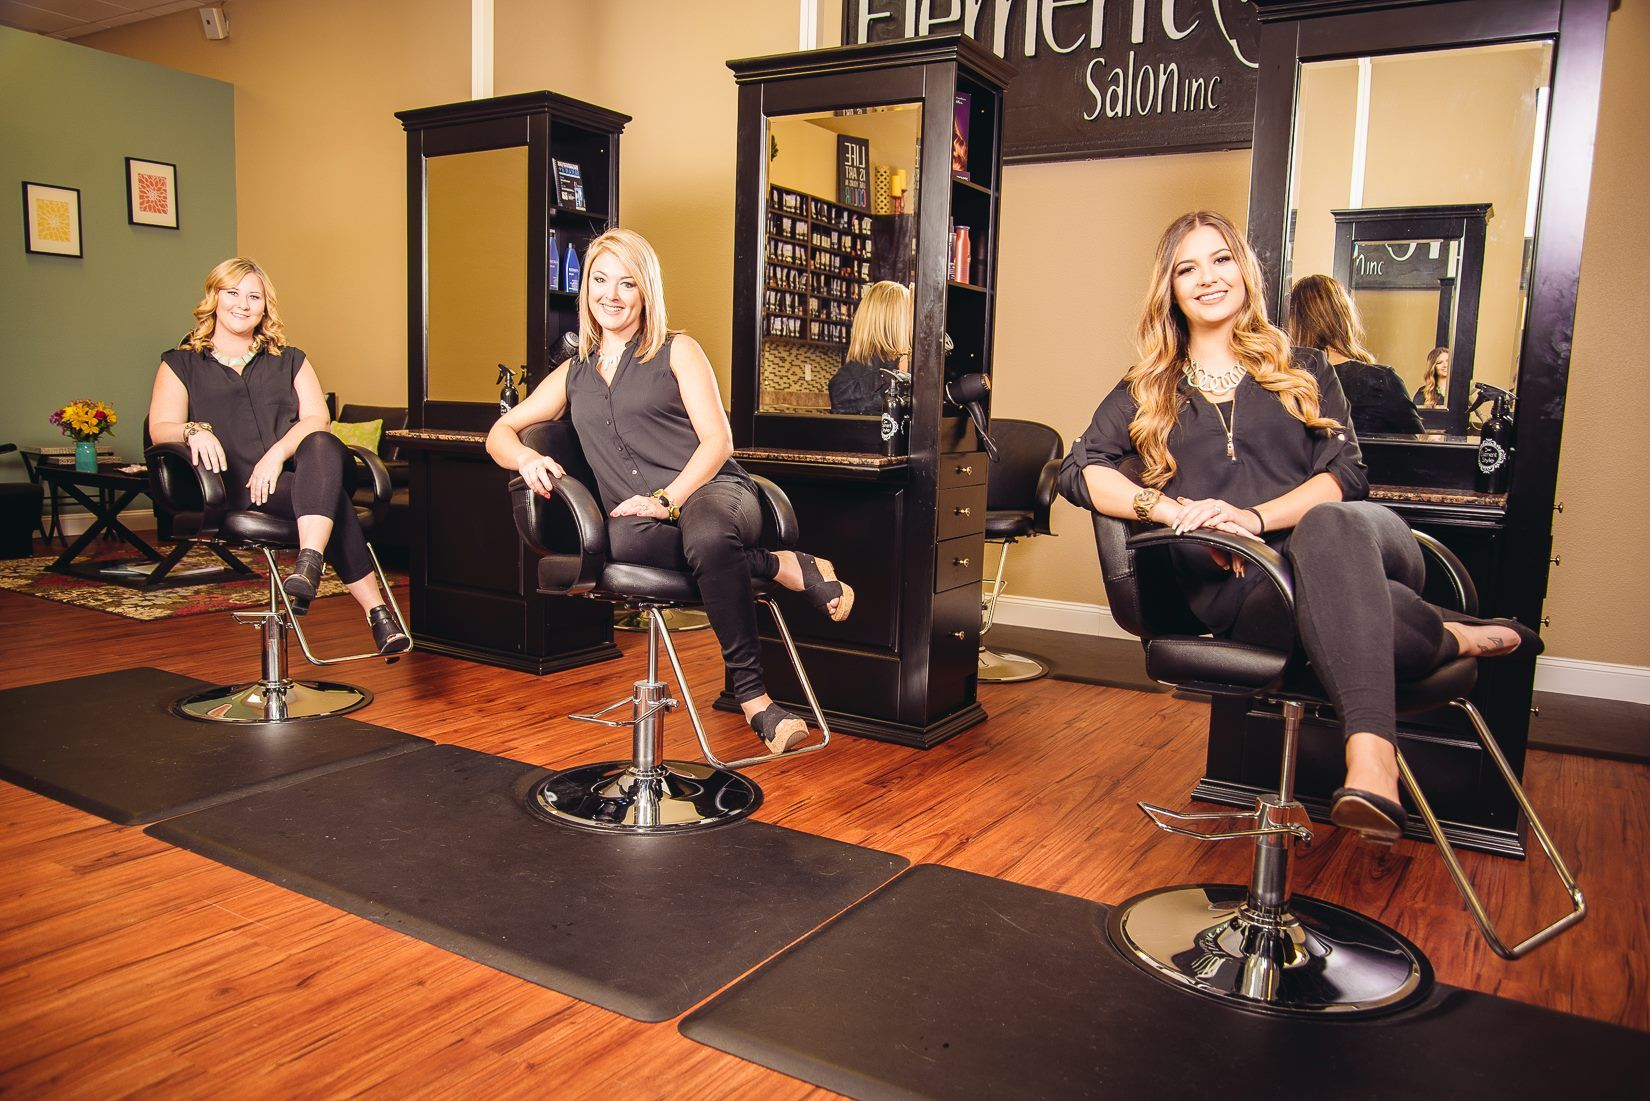 Element 54 salon, inc.